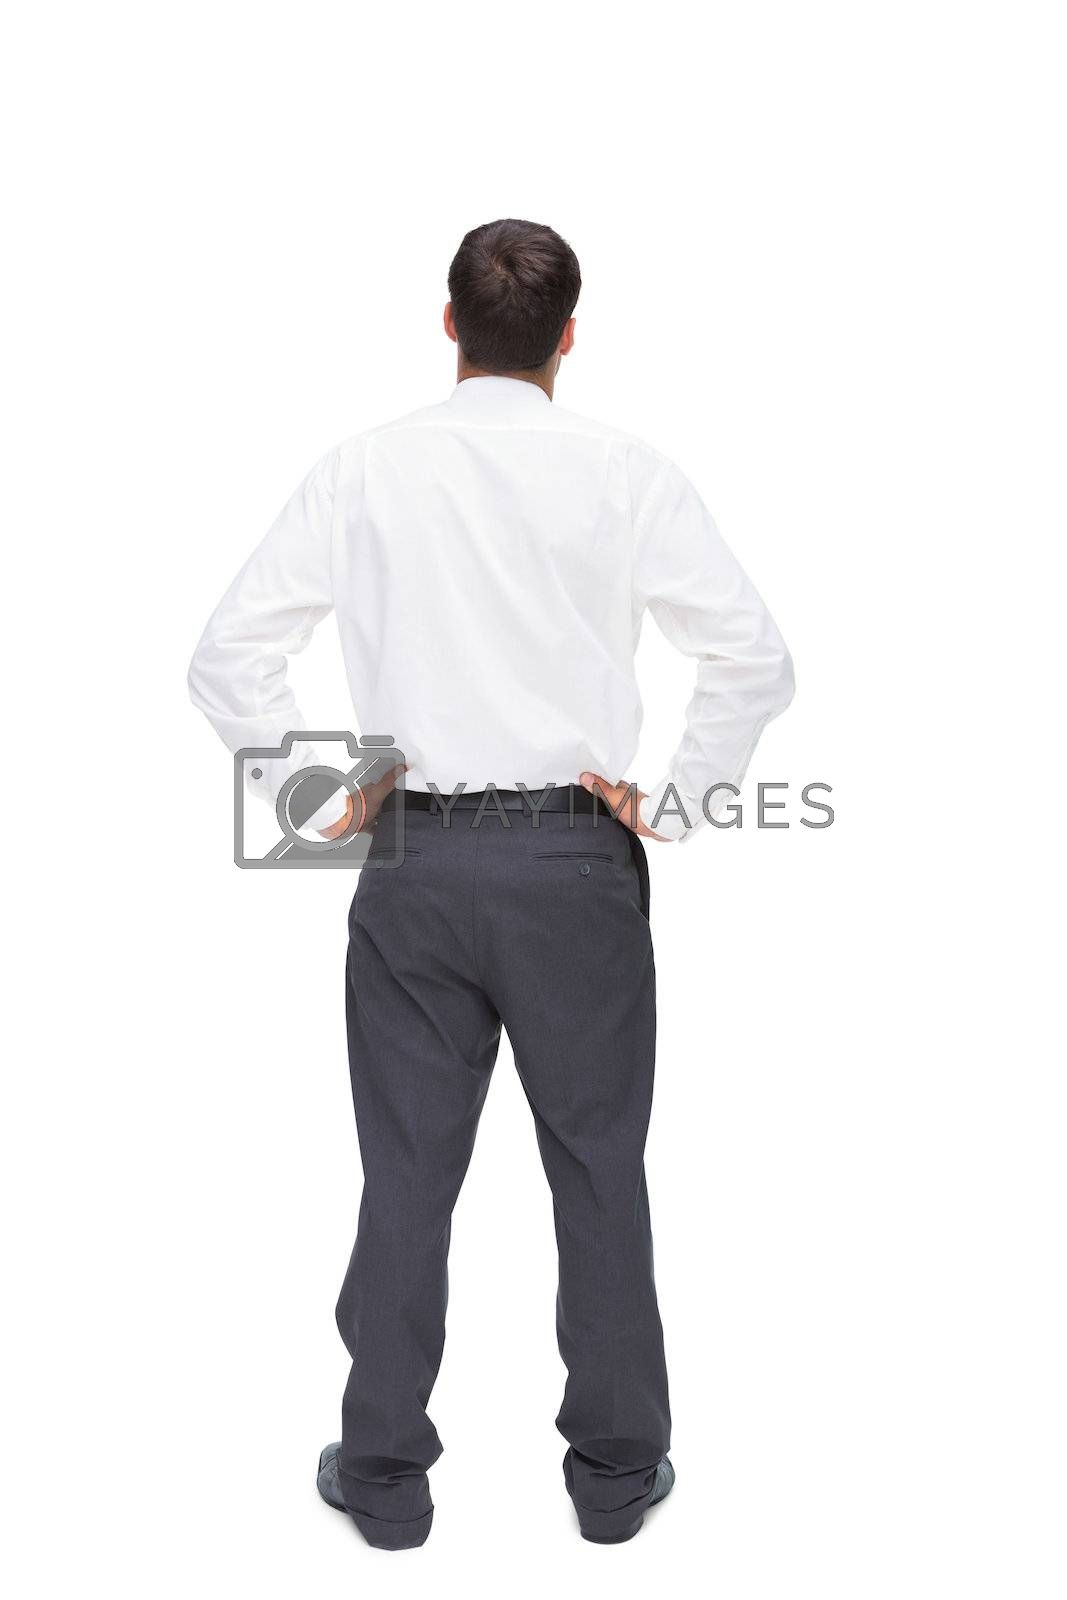 Rear view of classy young businessman posing by Wavebreakmedia